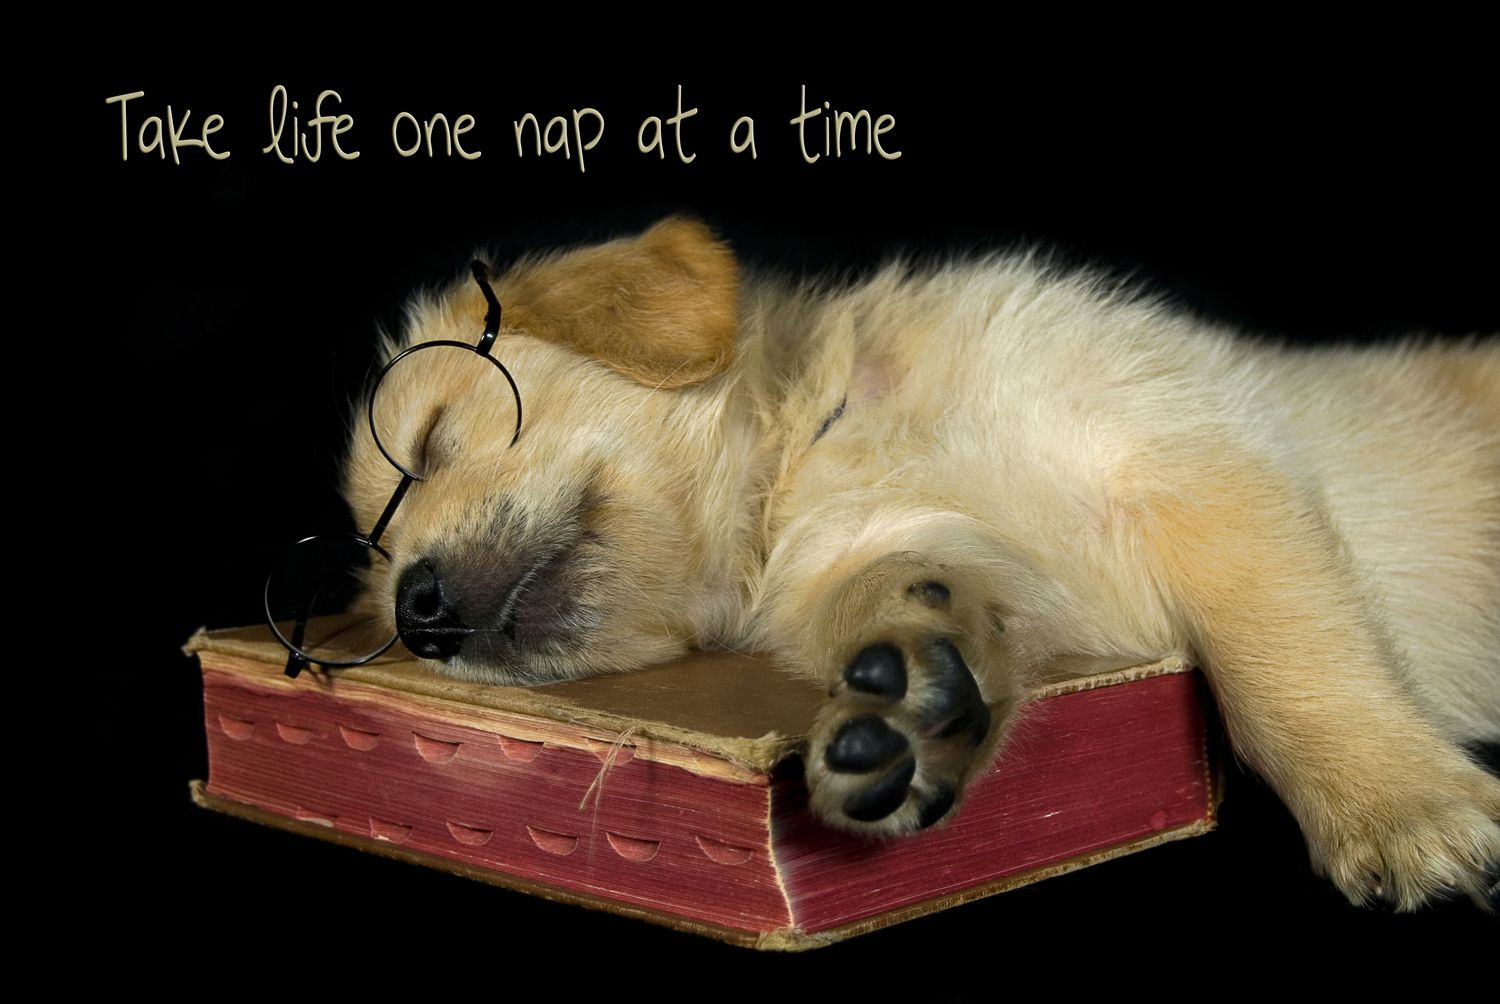 Golden retriever puppy napping on an old book.